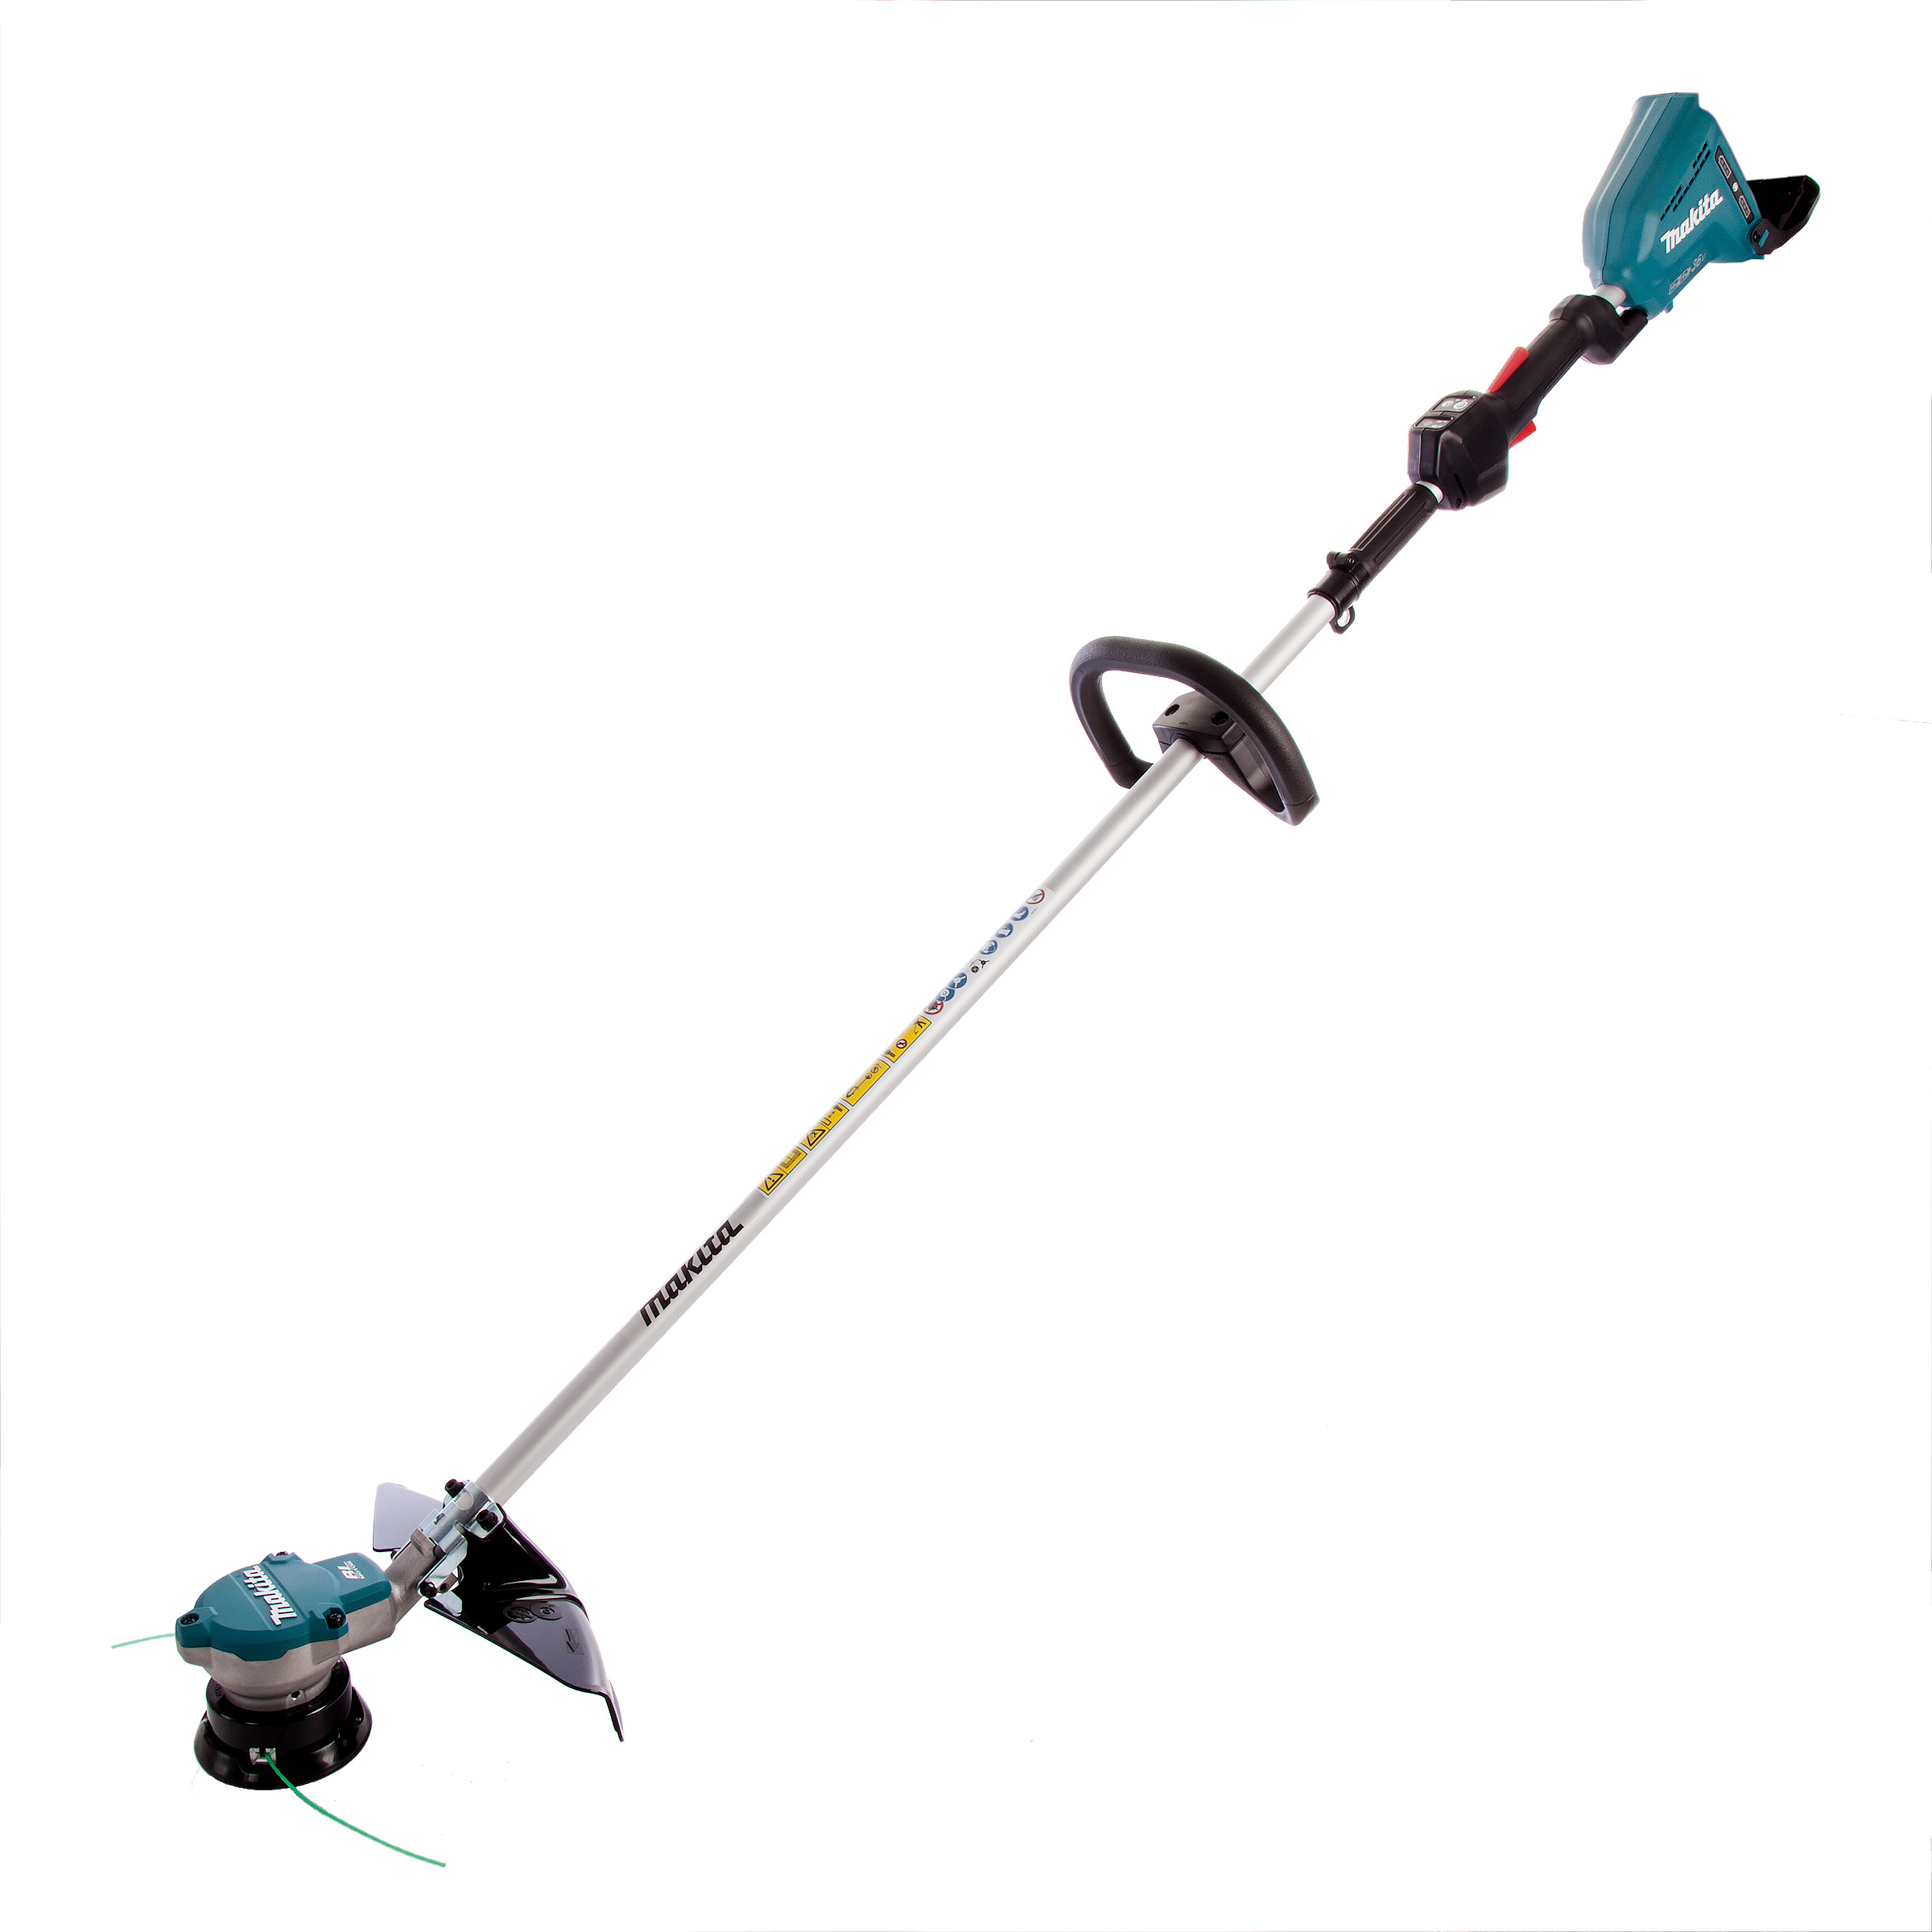 MAKITA 18V TWIN BRUSHLESS LXT LINE TRIMMER - DUR364L - BODY ONLY